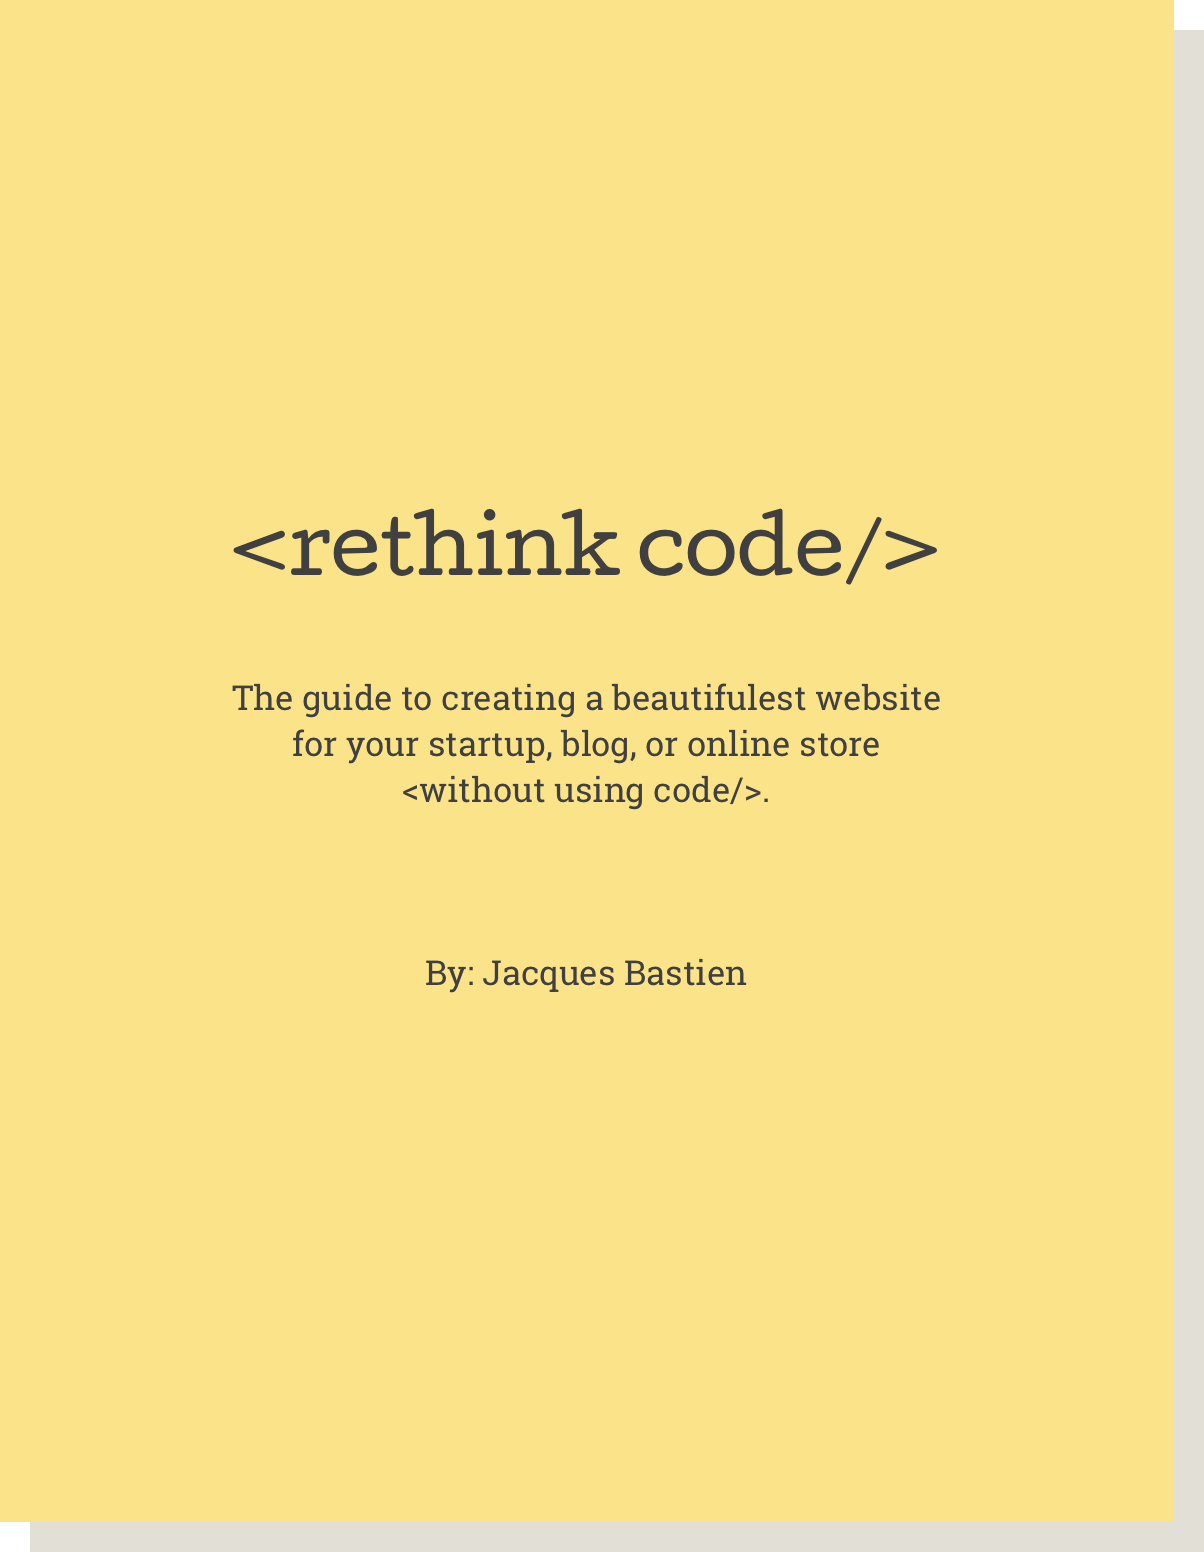 rethinkcode  Books rethinkcode